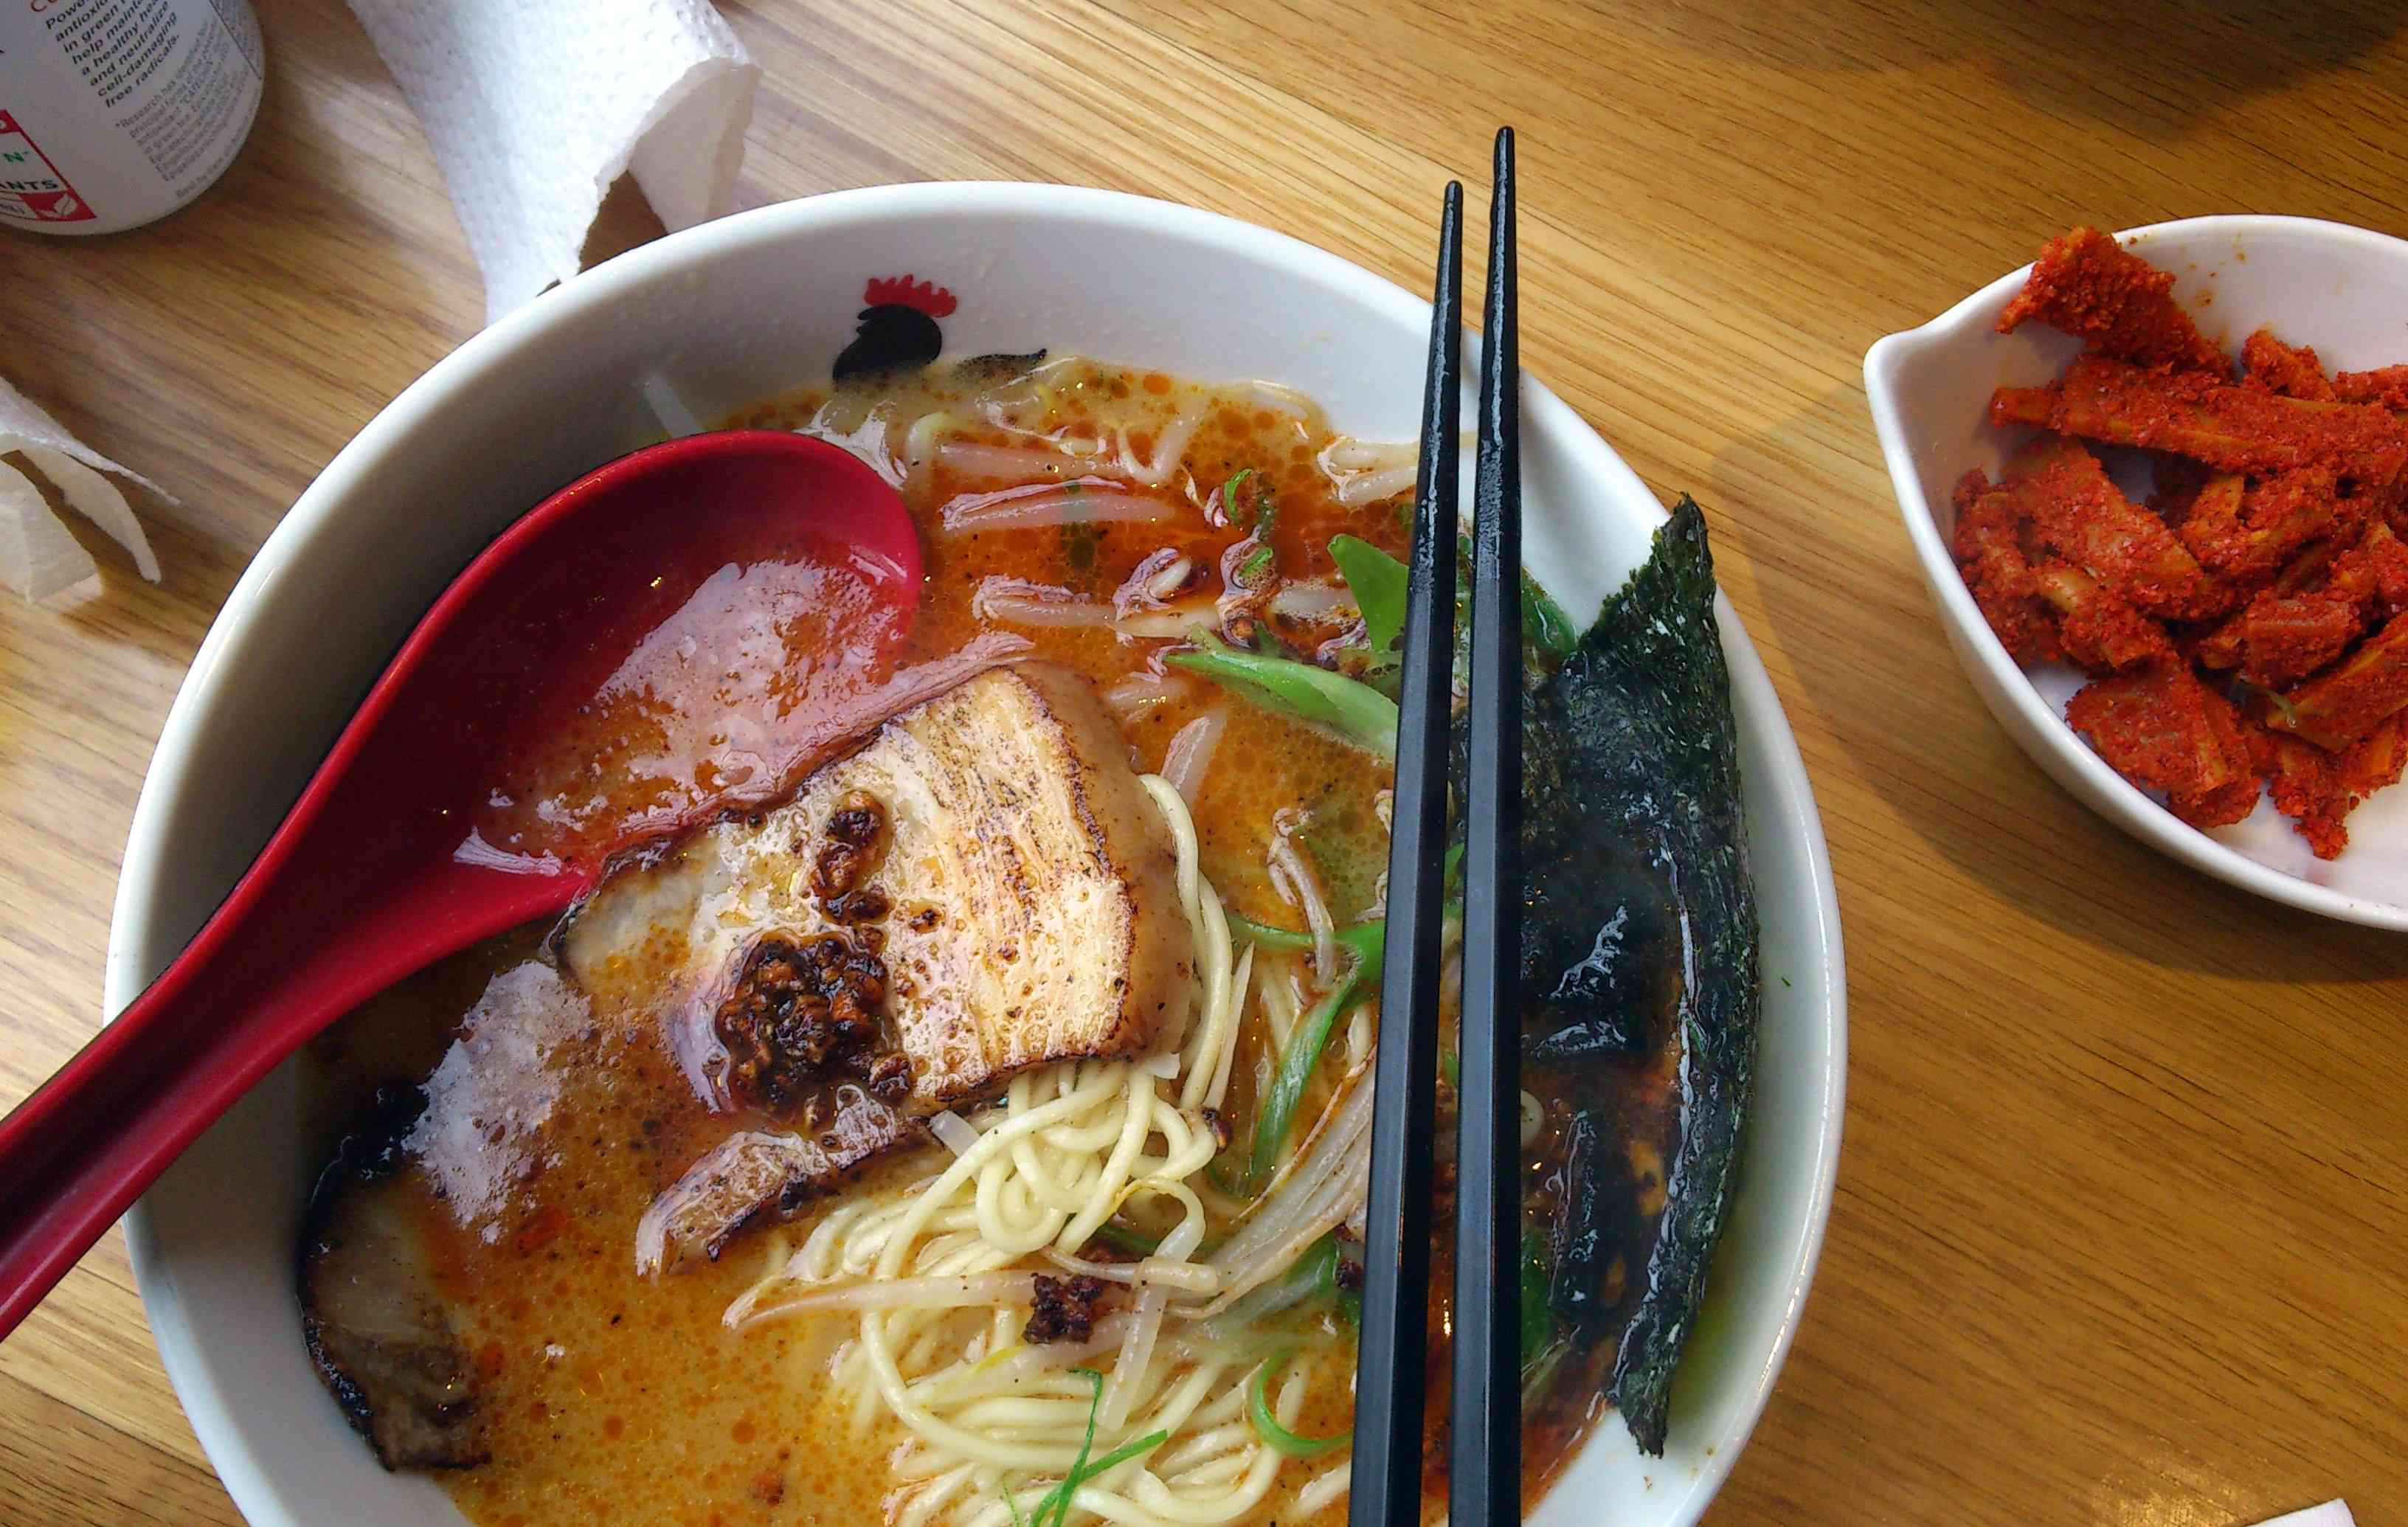 spicy ramen from Totto Ramen with seaweed scallions and pork belly